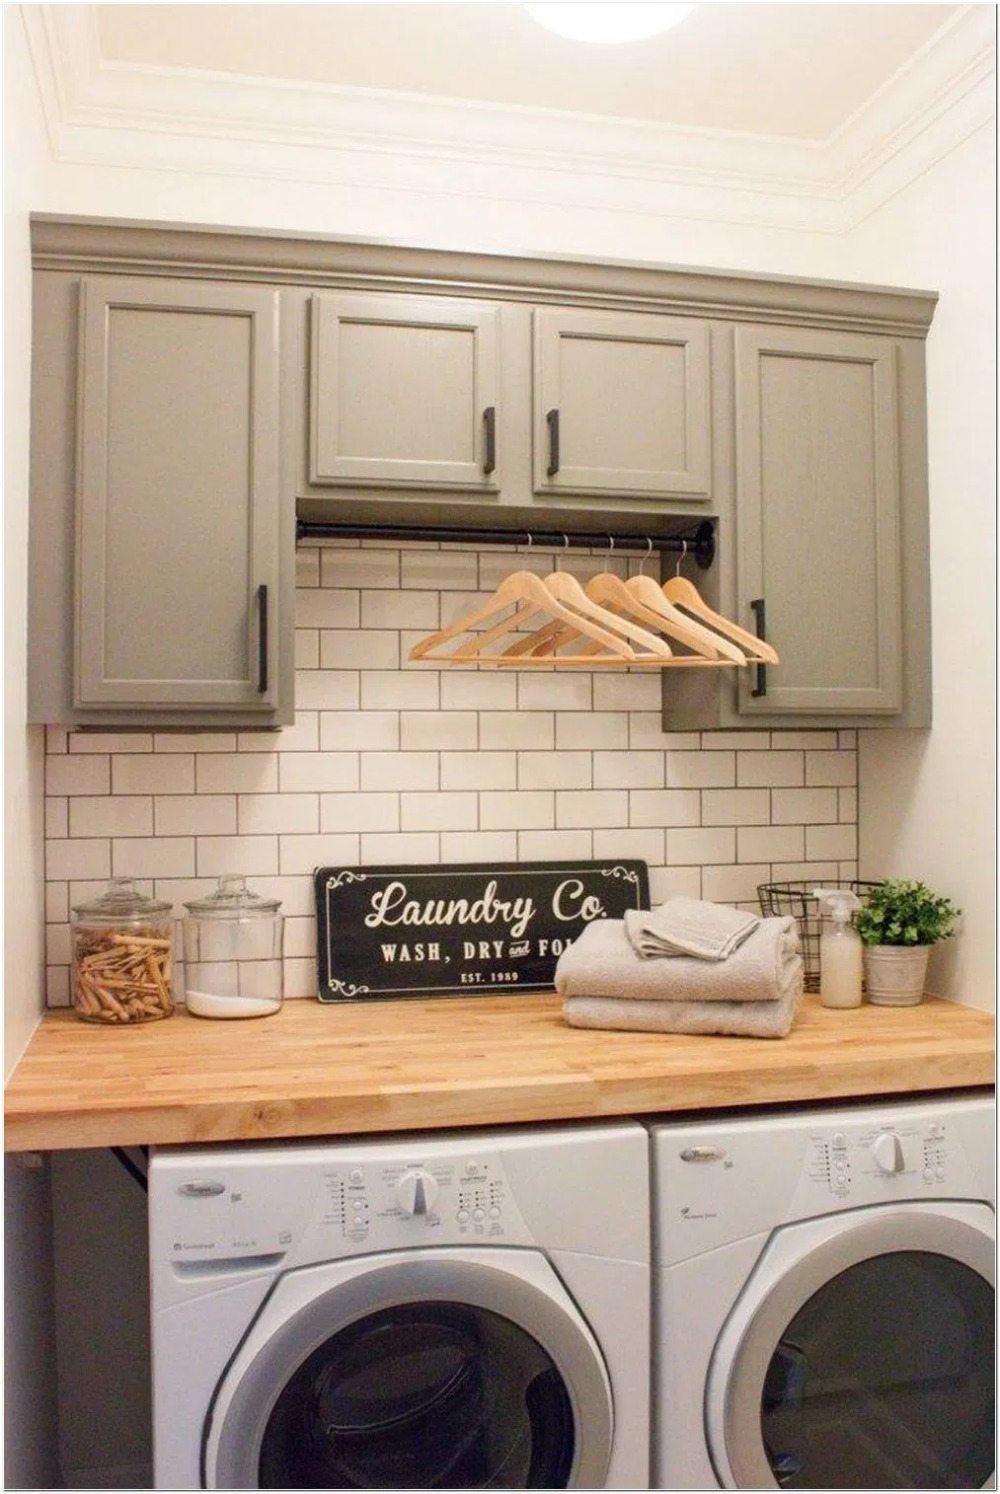 63 Smart Farmhouse Laundry Room Storage Organization Ideas 20